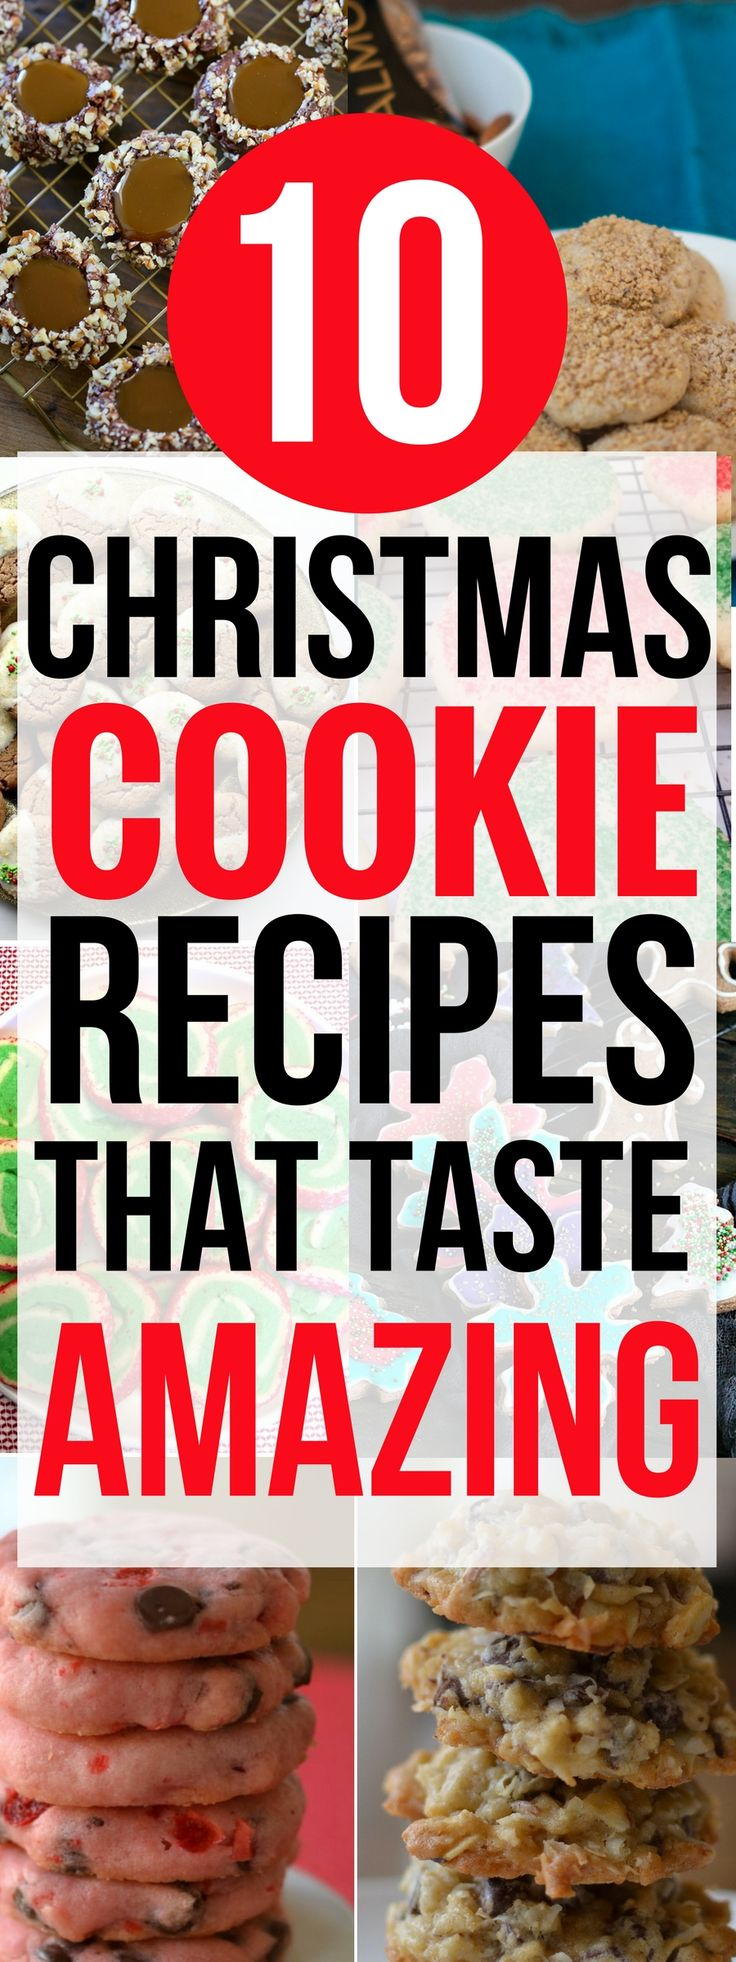 These 10 christmas cookie recipes are THE BEST! I'm so glad I found these christmas cookies recipes, now my family and I can bake them together during the holidays! Pinning for sure! #christmas #christmascookies #desserts #christmastradition